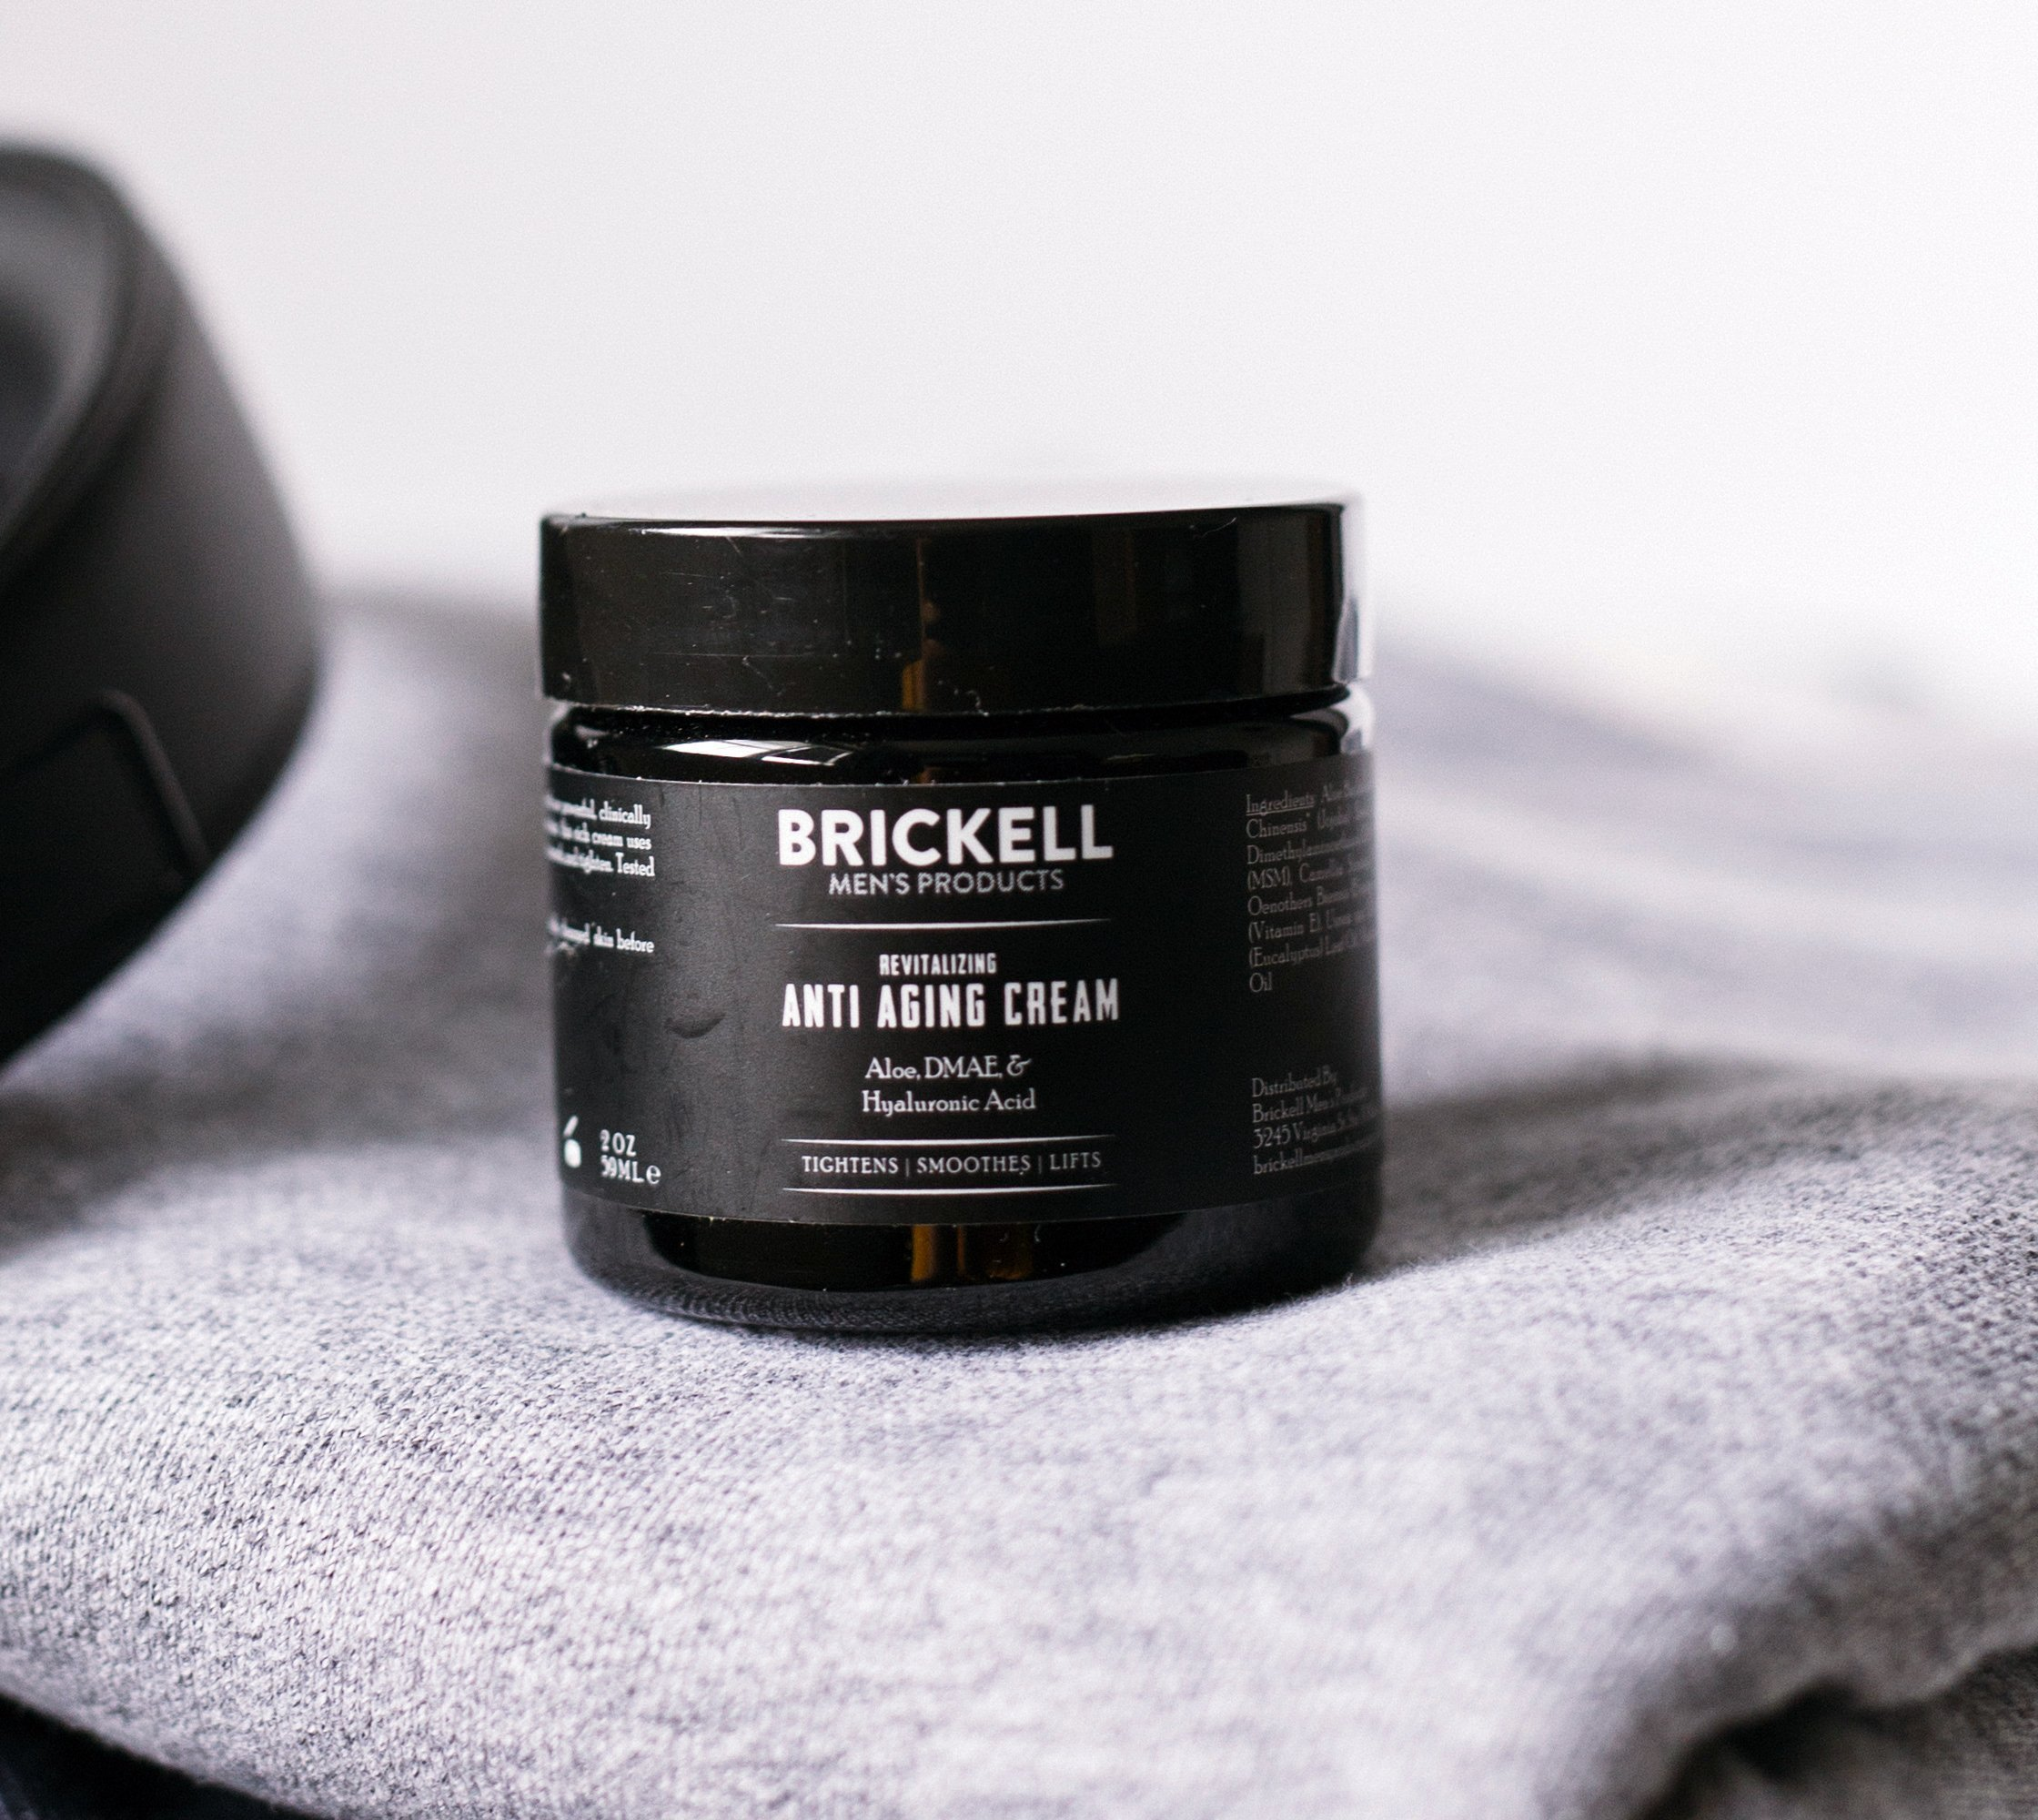 Brickell Men's Revitalizing Anti-Aging Cream For Men, Natural and Organic Anti Wrinkle Night Face Cream To Reduce Fine Lines and Wrinkles, 2 Ounce, Scented by Brickell Men's Products (Image #3)